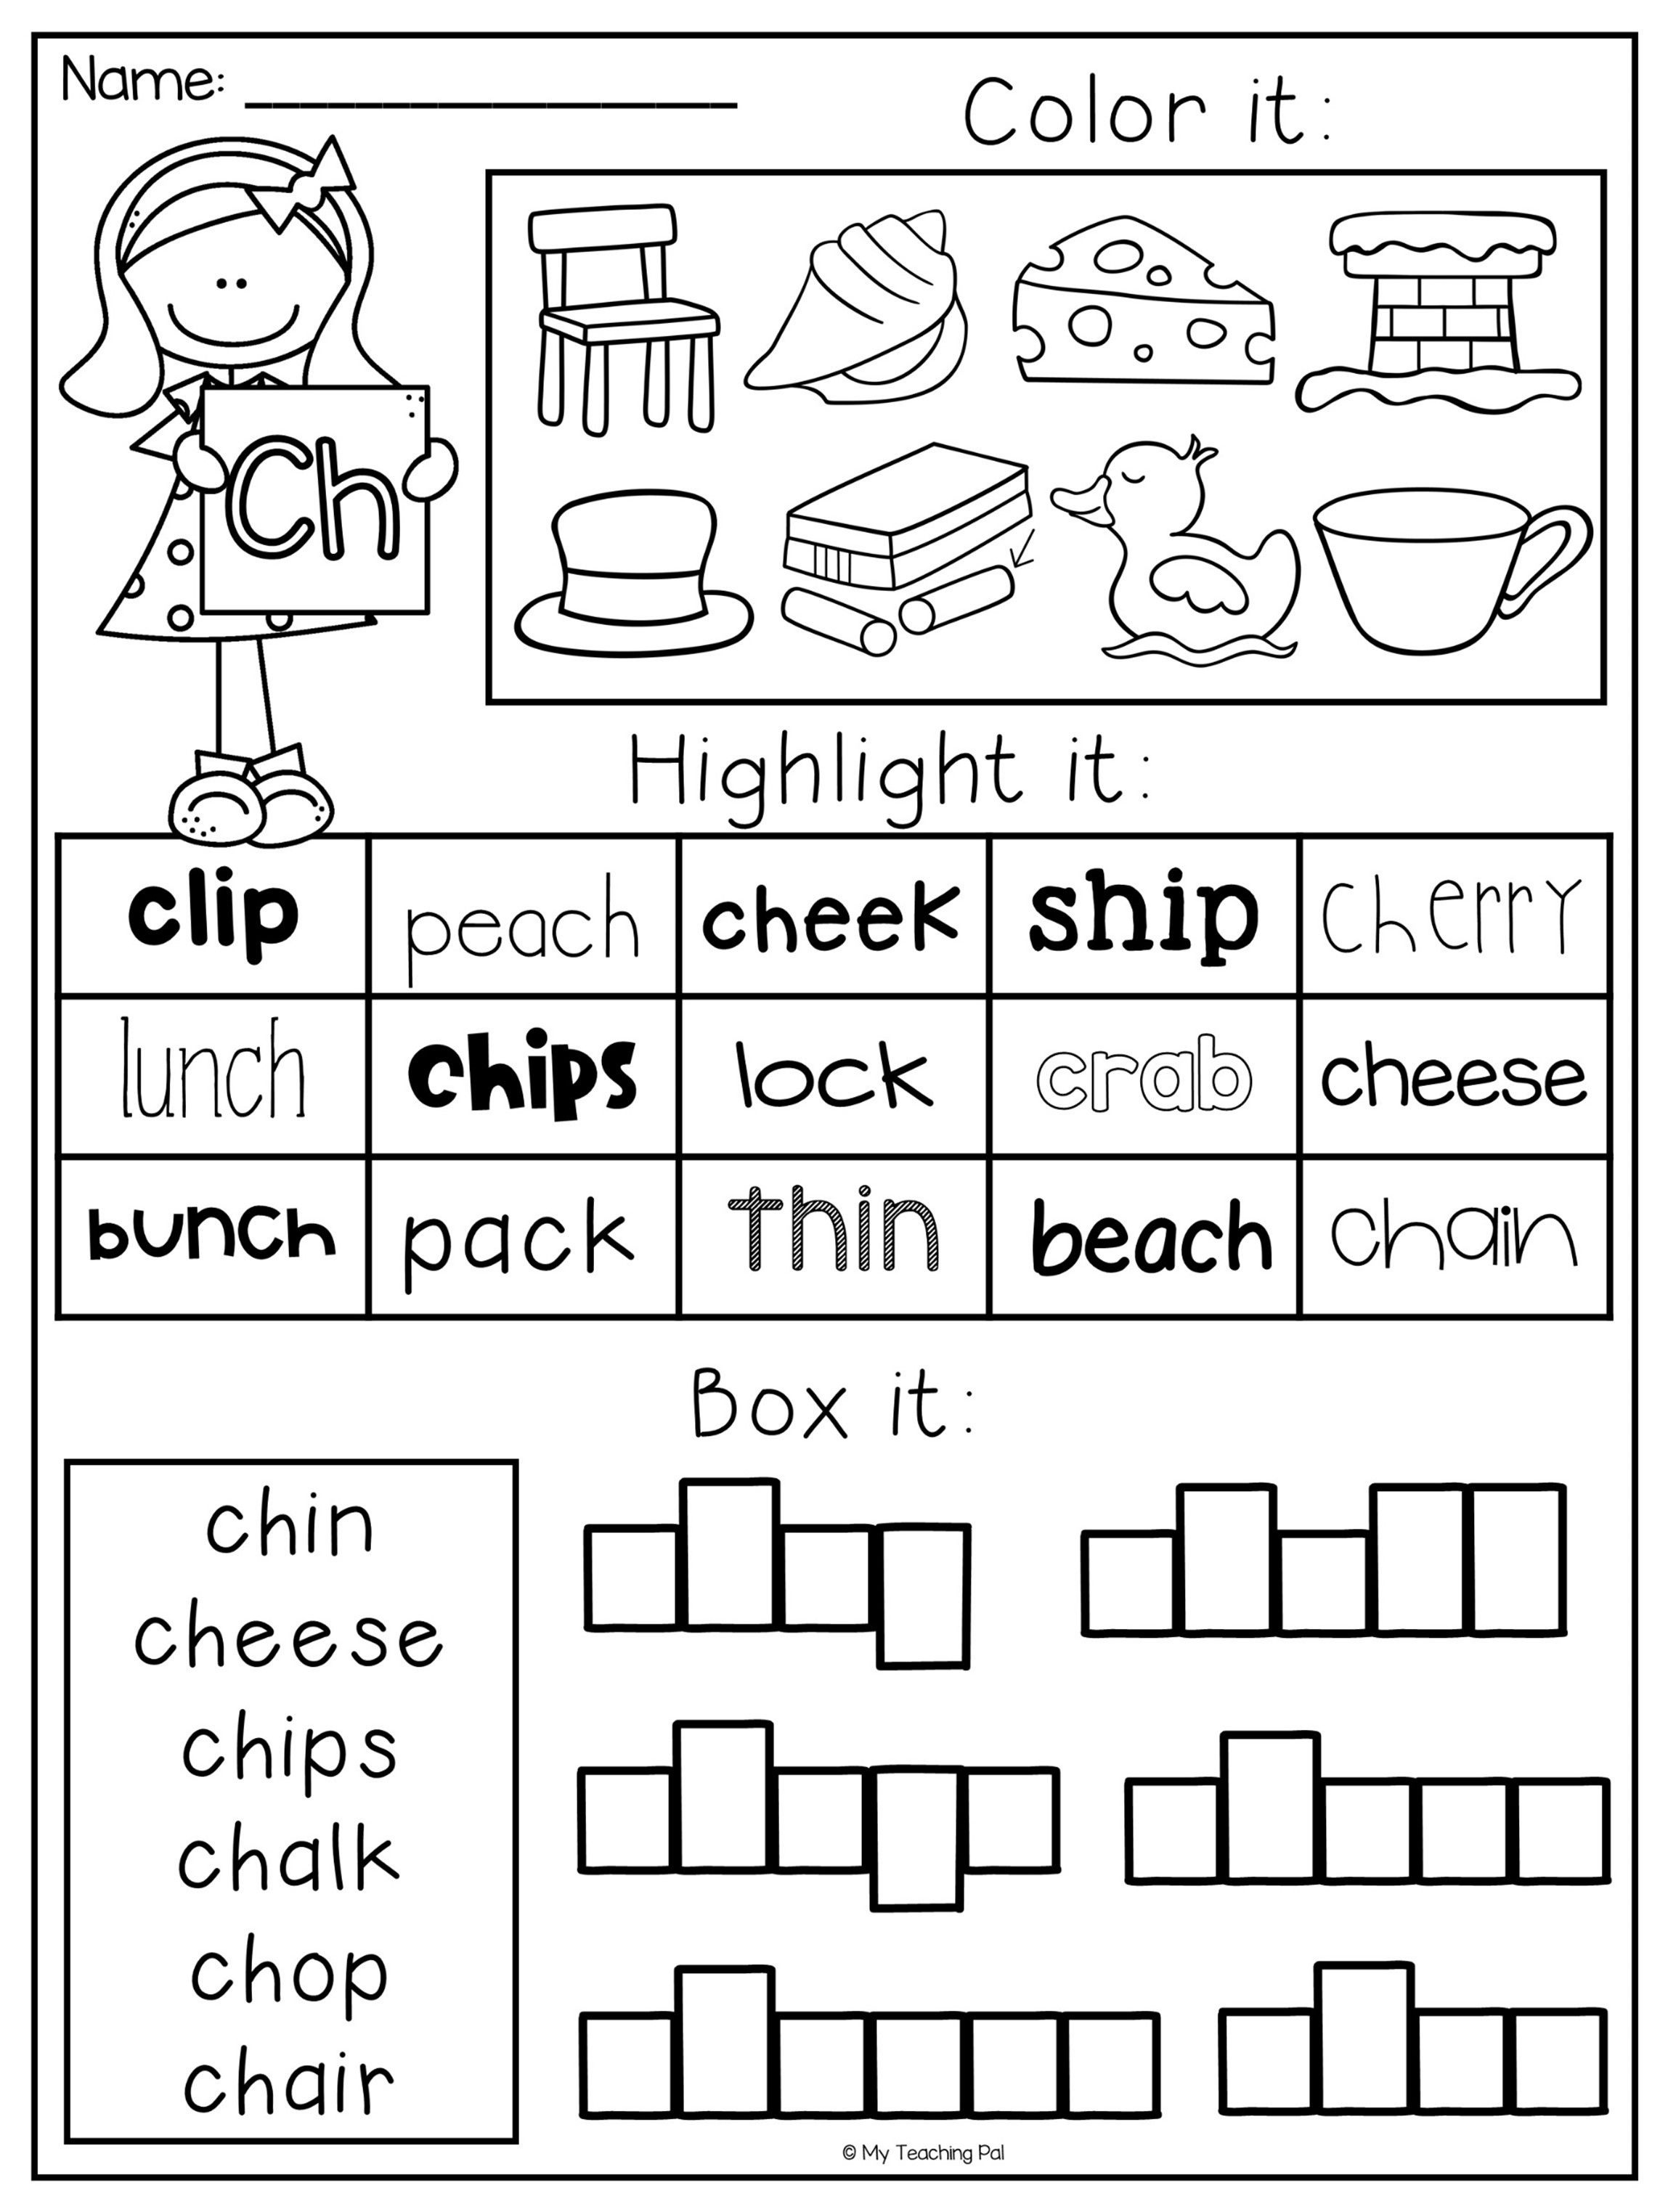 Digraph Worksheet Packet - Ch, Sh, Th, Wh, Ph | Educational - Sh Worksheets Free Printable